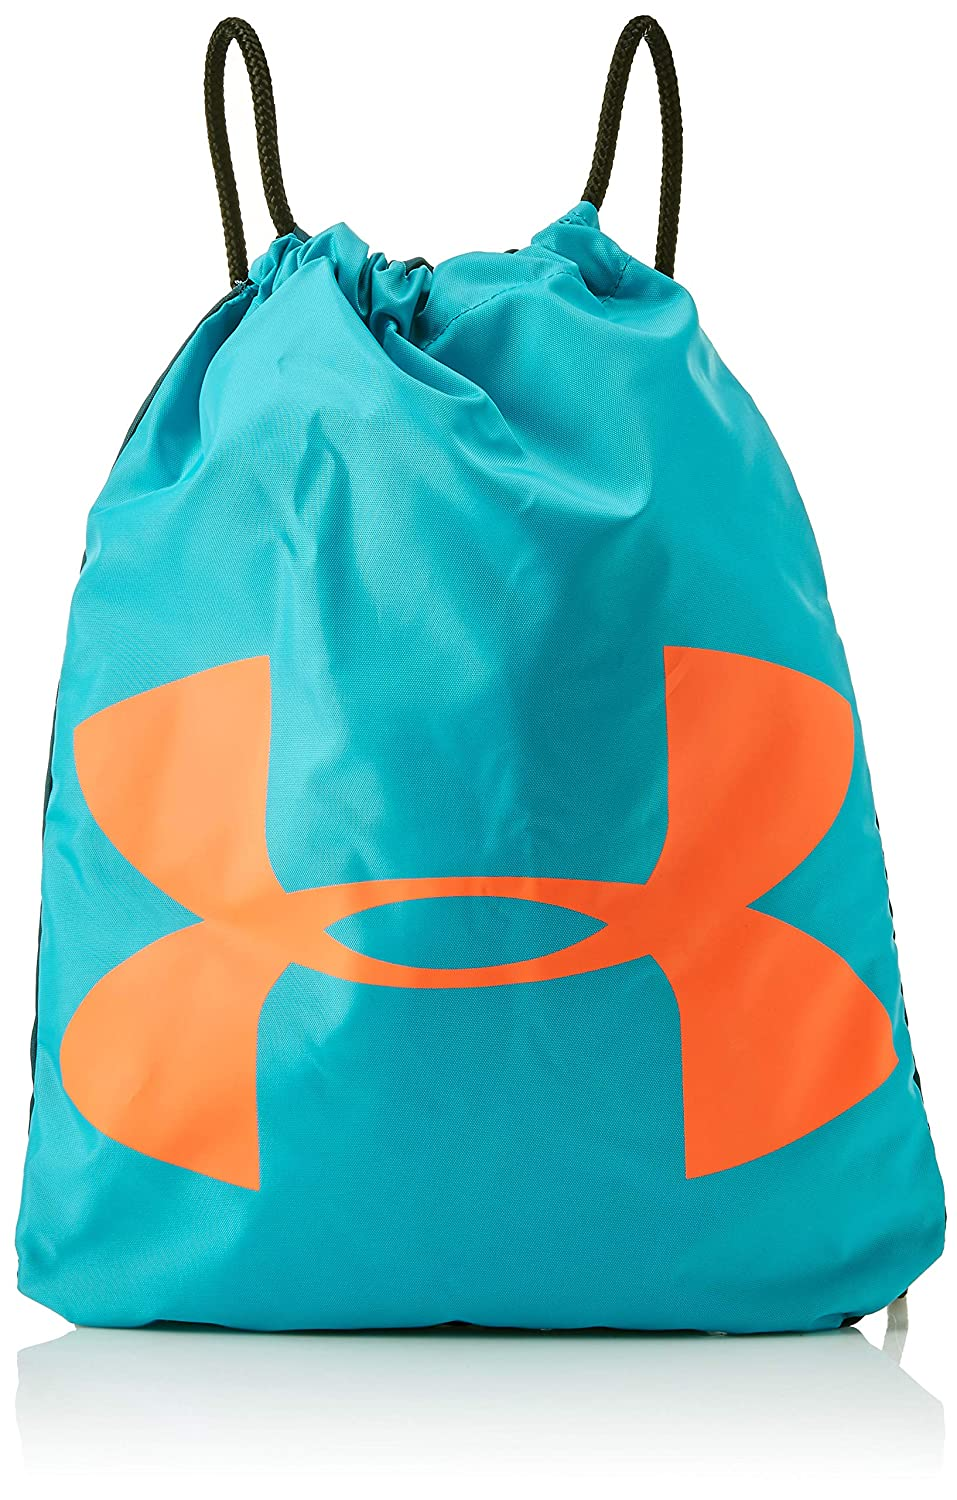 Under Armour Ozsee バックパック One Size ブルー B077KGDVK6